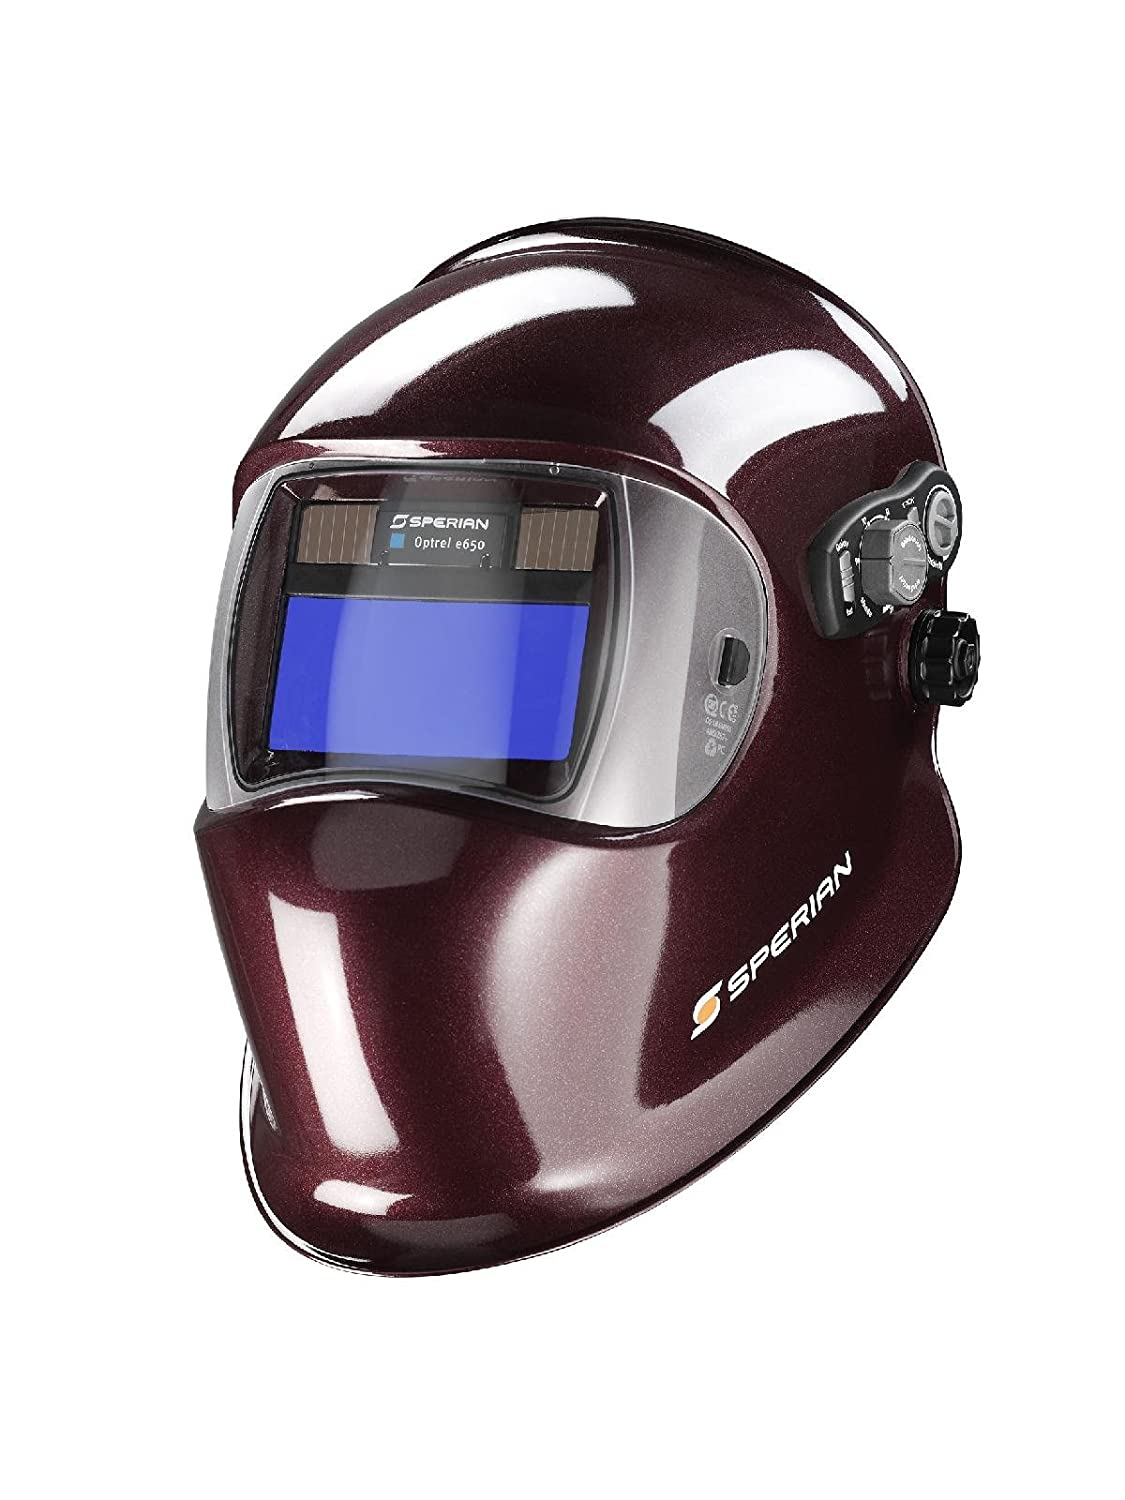 Welding Helmet Shade 4 9 Red Outlet SALE 13 Max 53% OFF to